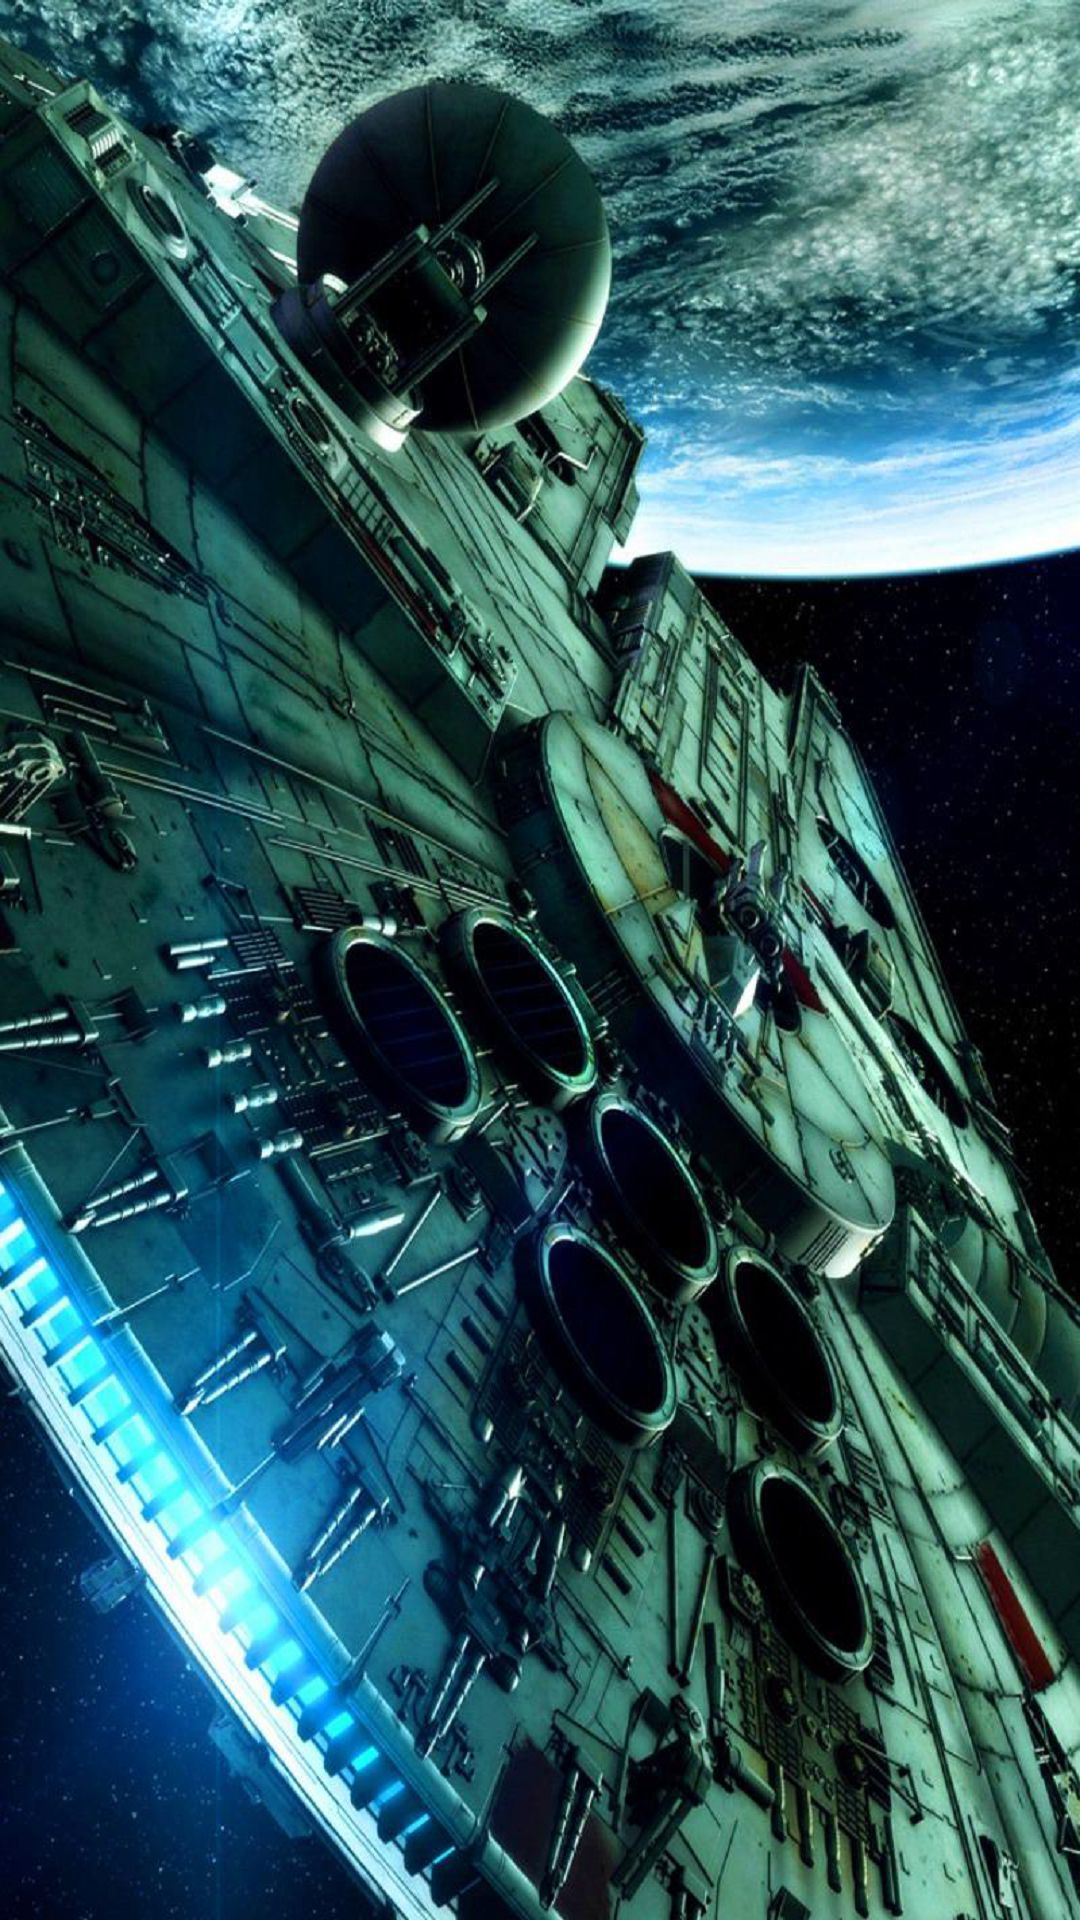 Star Wars wallpapers for iPhone and iPad my iGadget 1080x1920